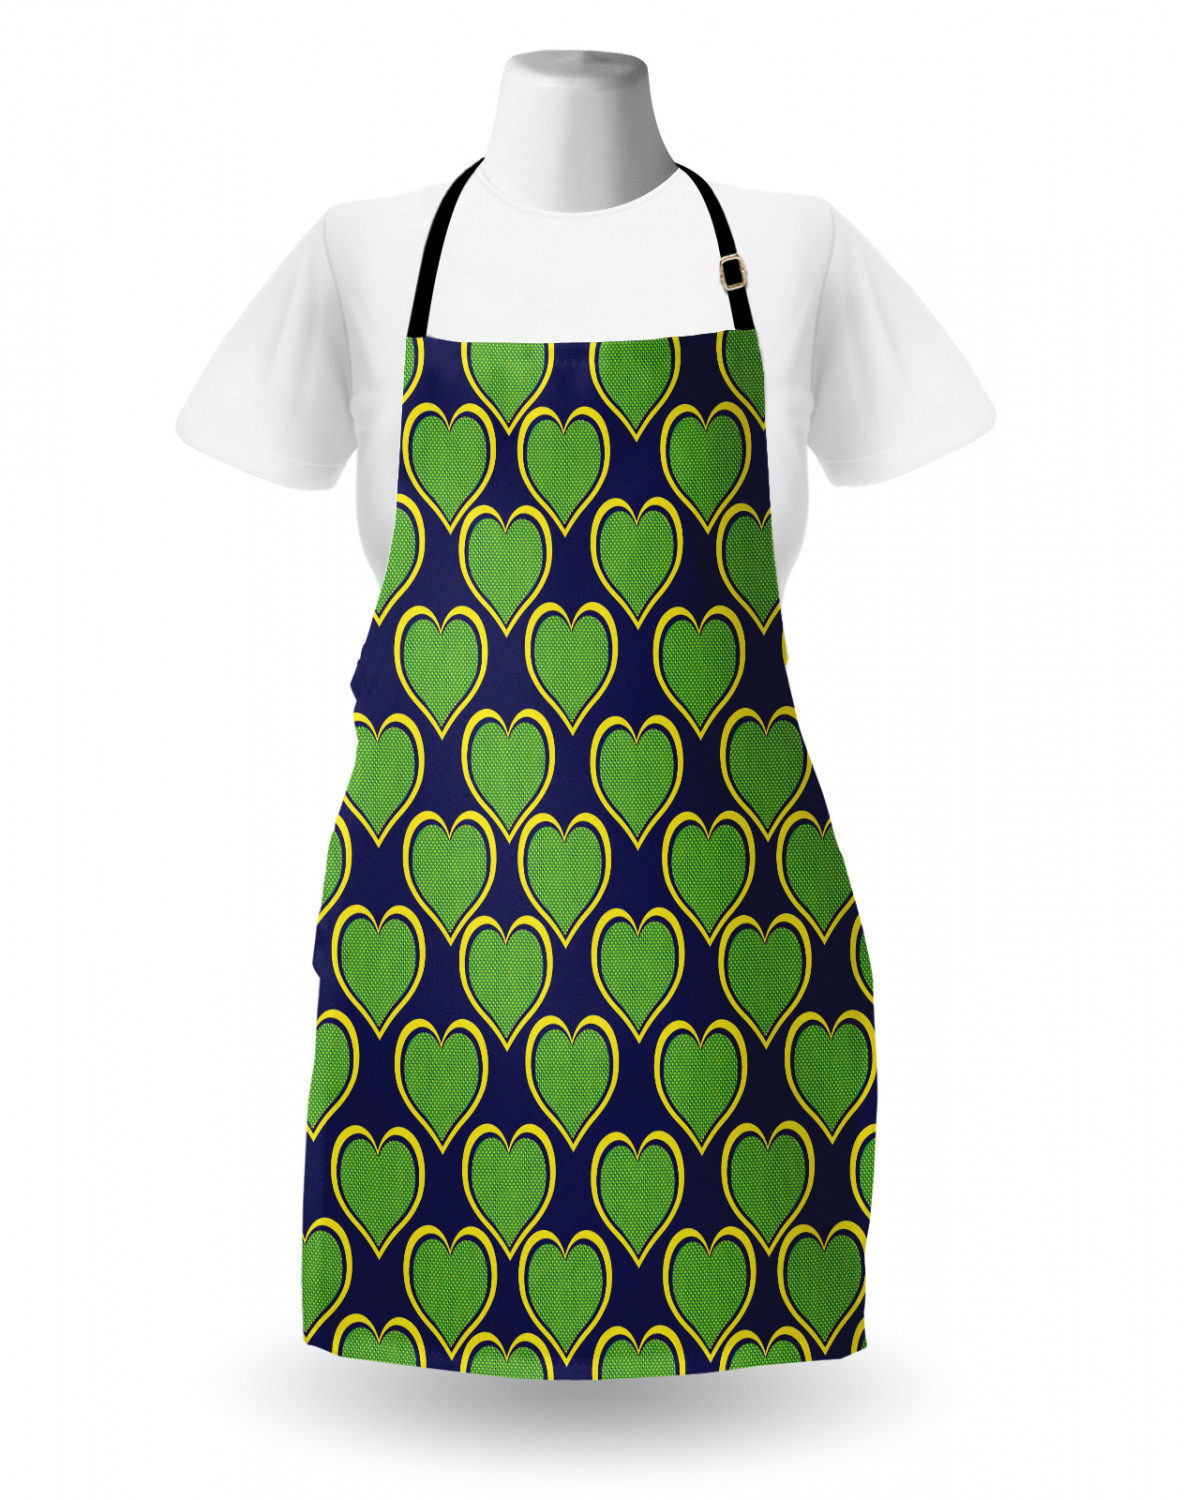 Ambesonne-Outdoor-Use-Apron-with-Adjustable-Neck-Strap-for-Gardening-and-Cooking miniatura 131